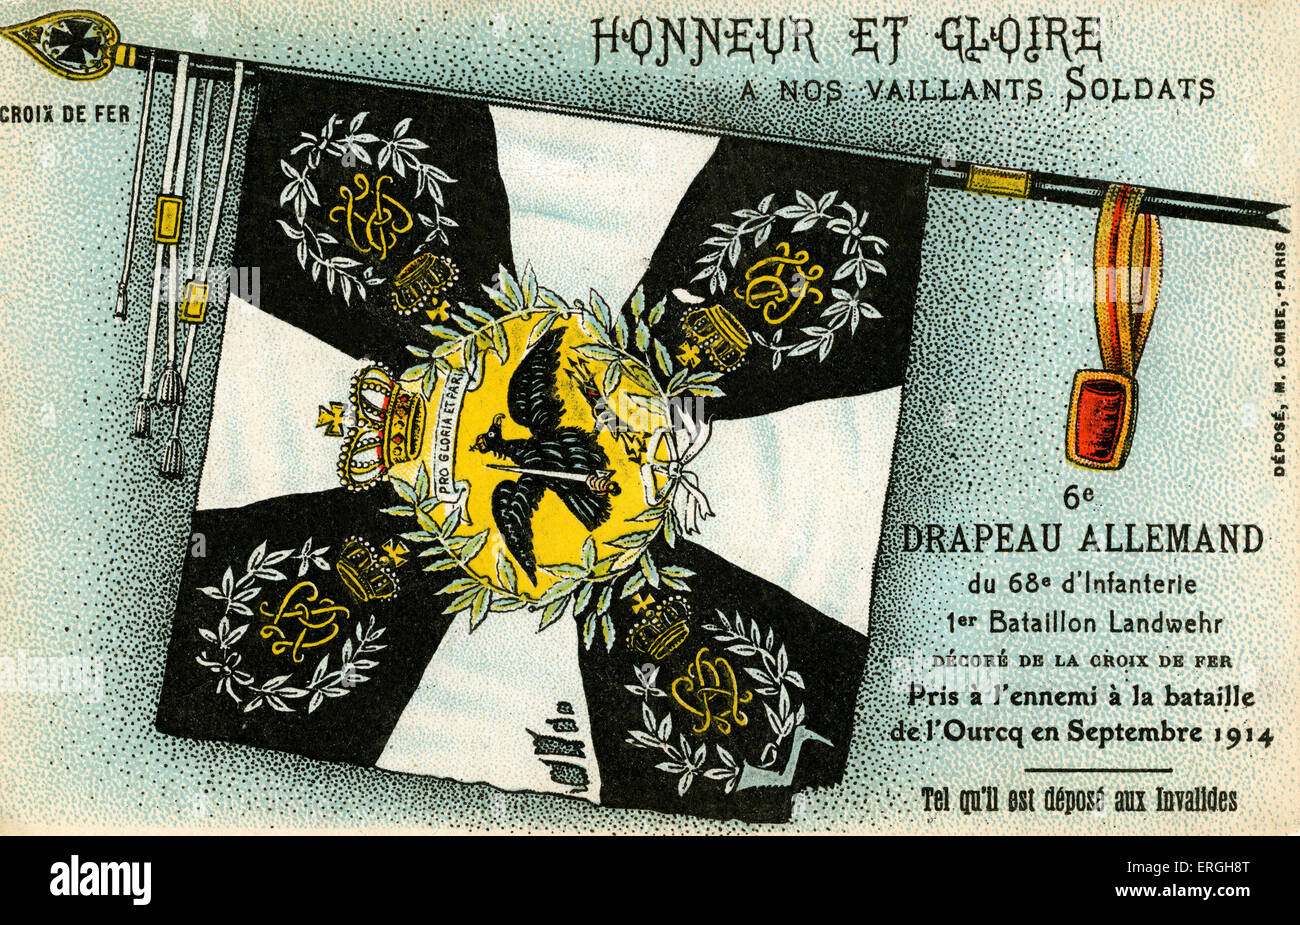 World War I: 6th  German flag captured by the French. Flag of the 68th Infantry ('1st Batallion- Landwehr). - Stock Image